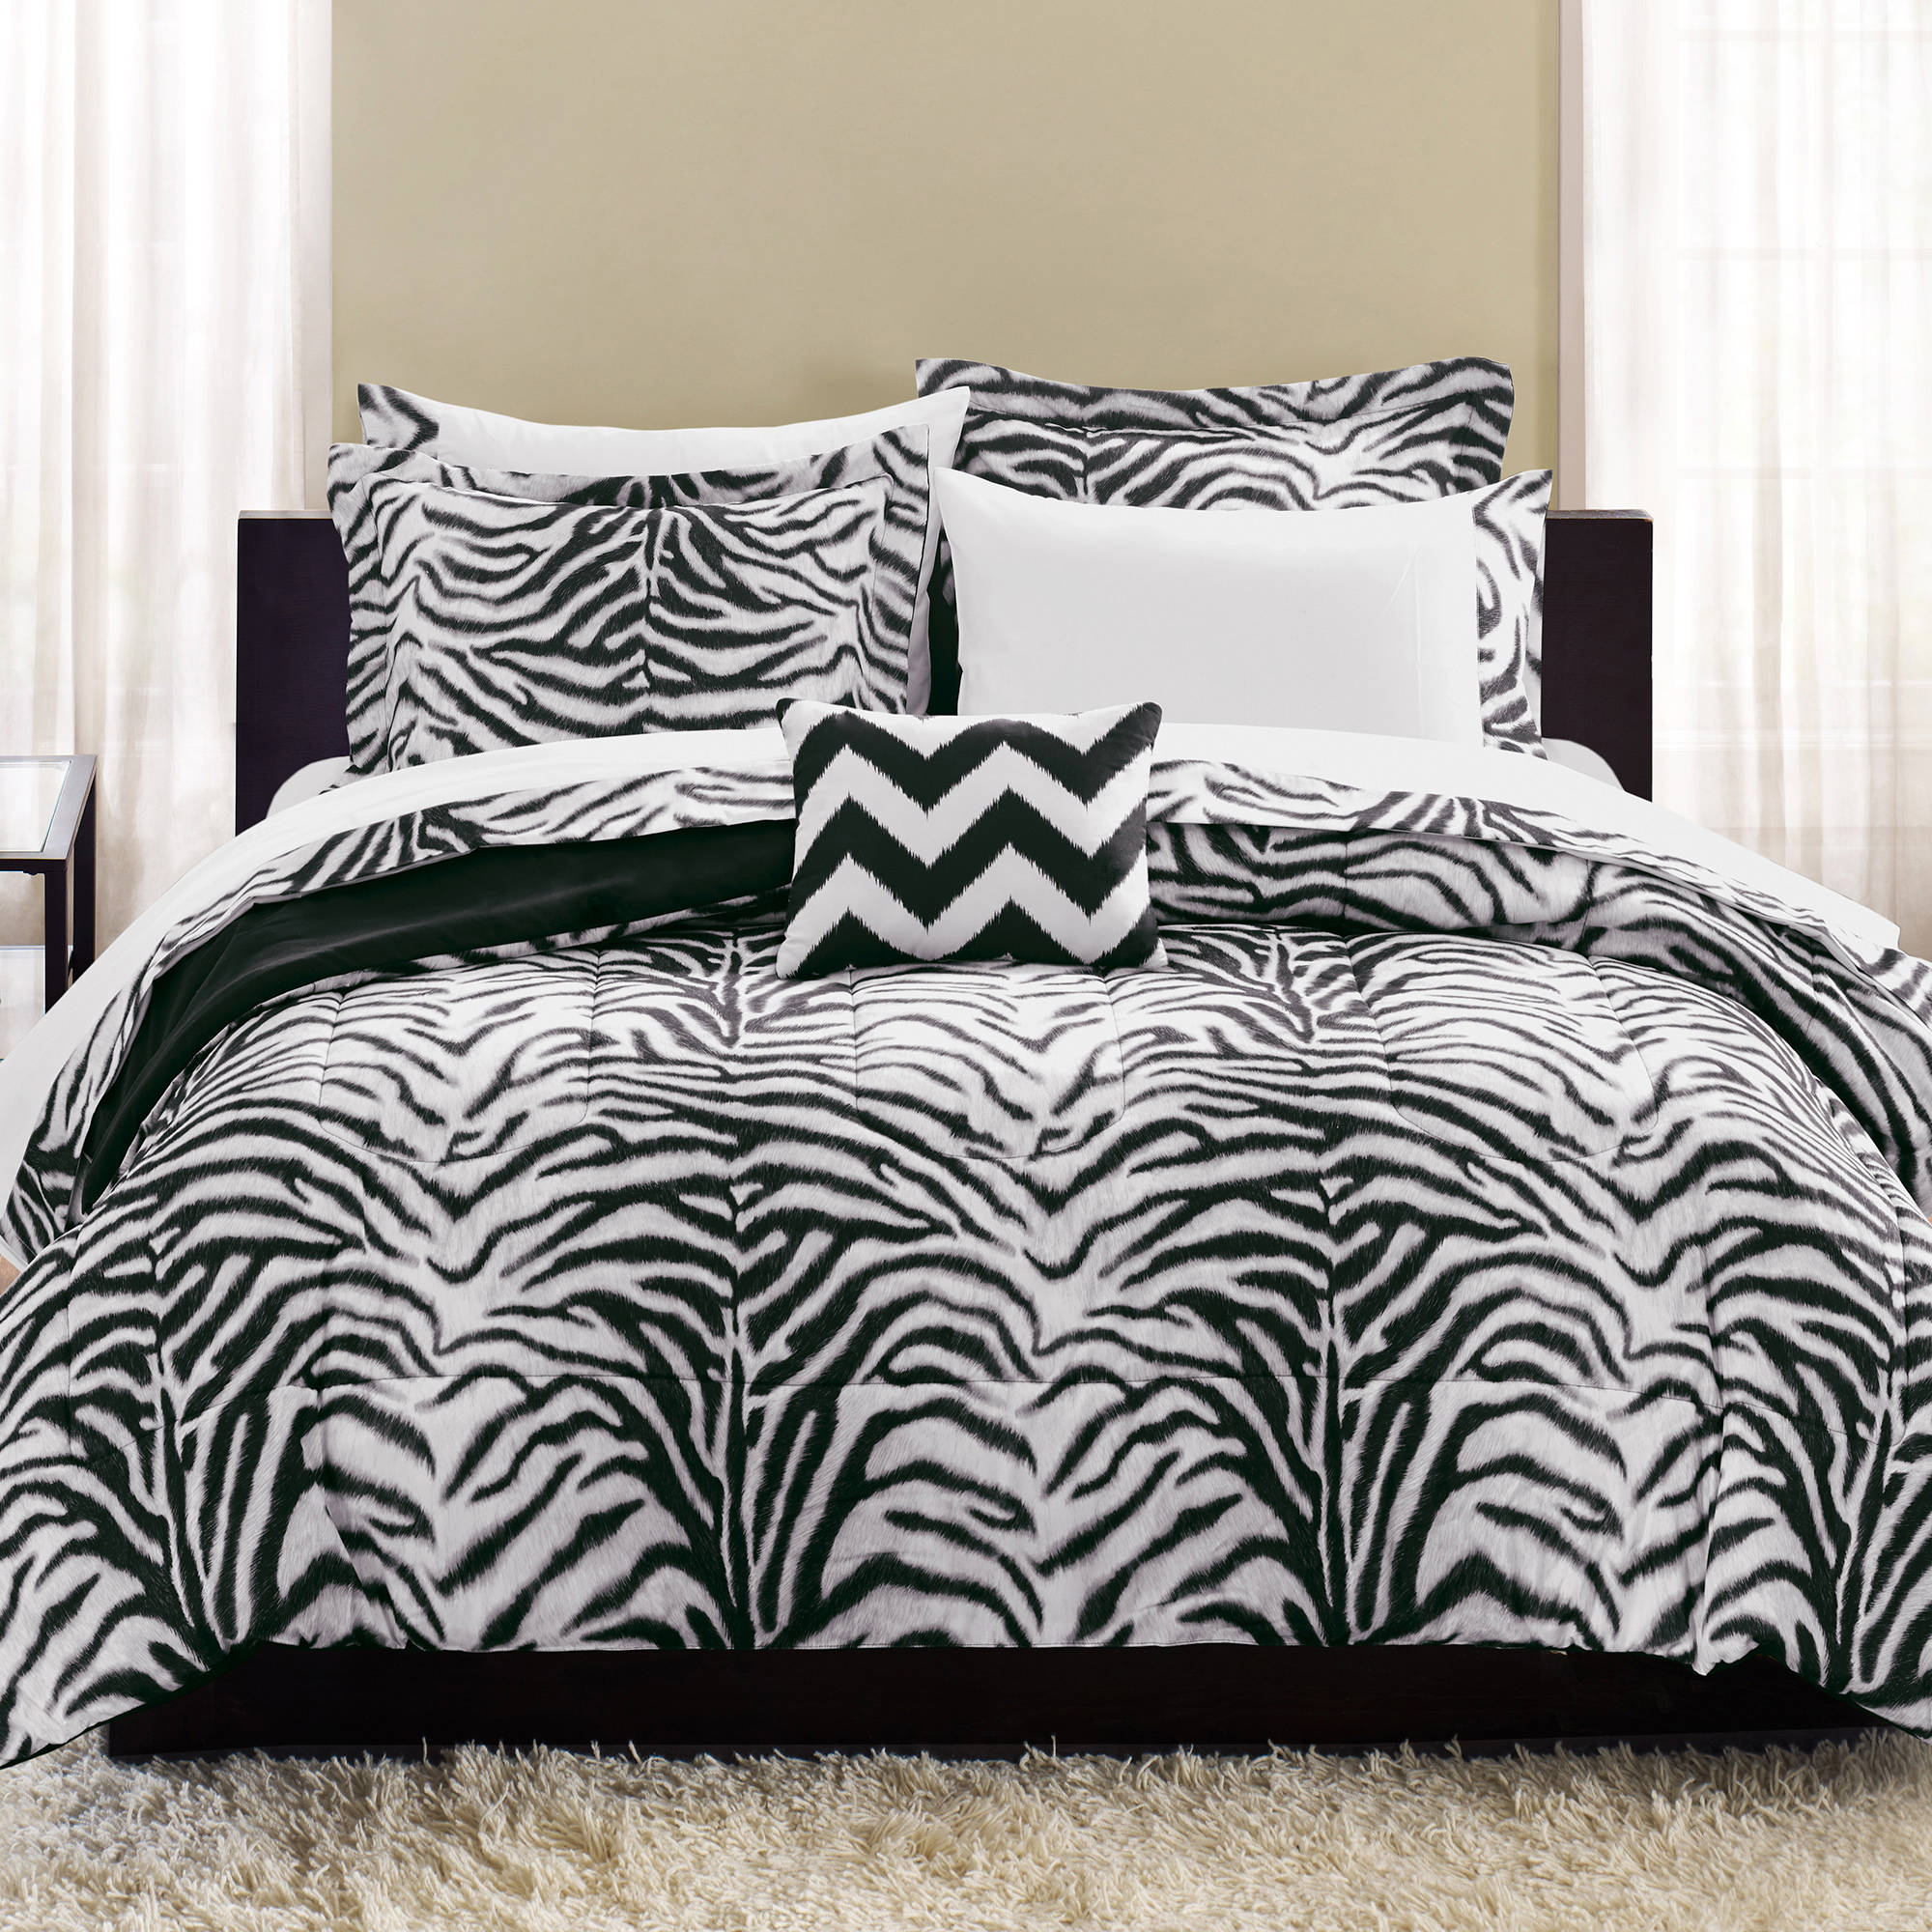 Animal print bedroom sets - Animal Print Bedroom Sets 21